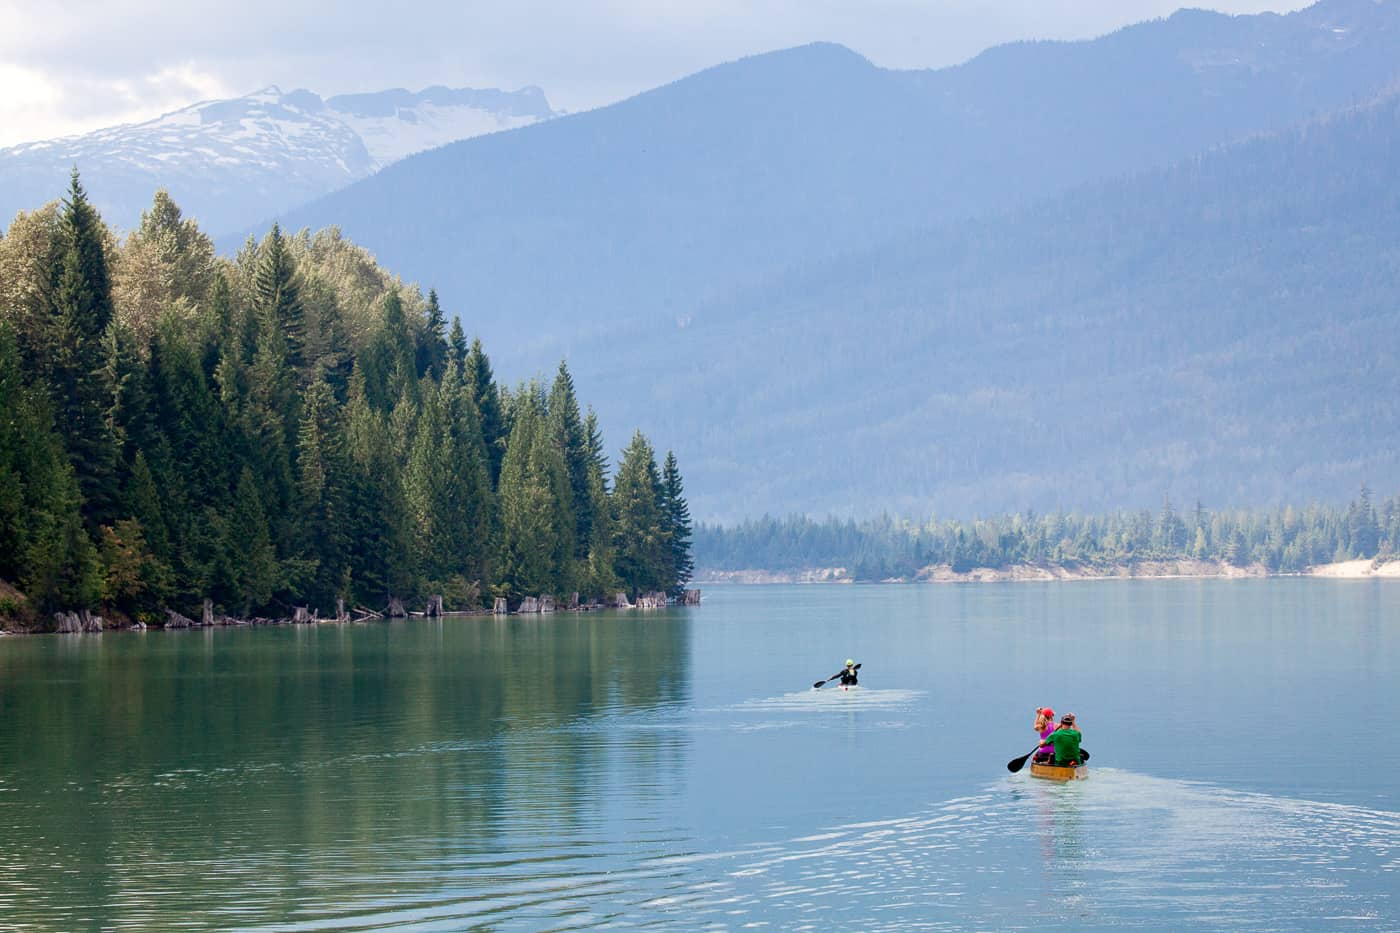 Canoeing on glassy Lake Revelstoke